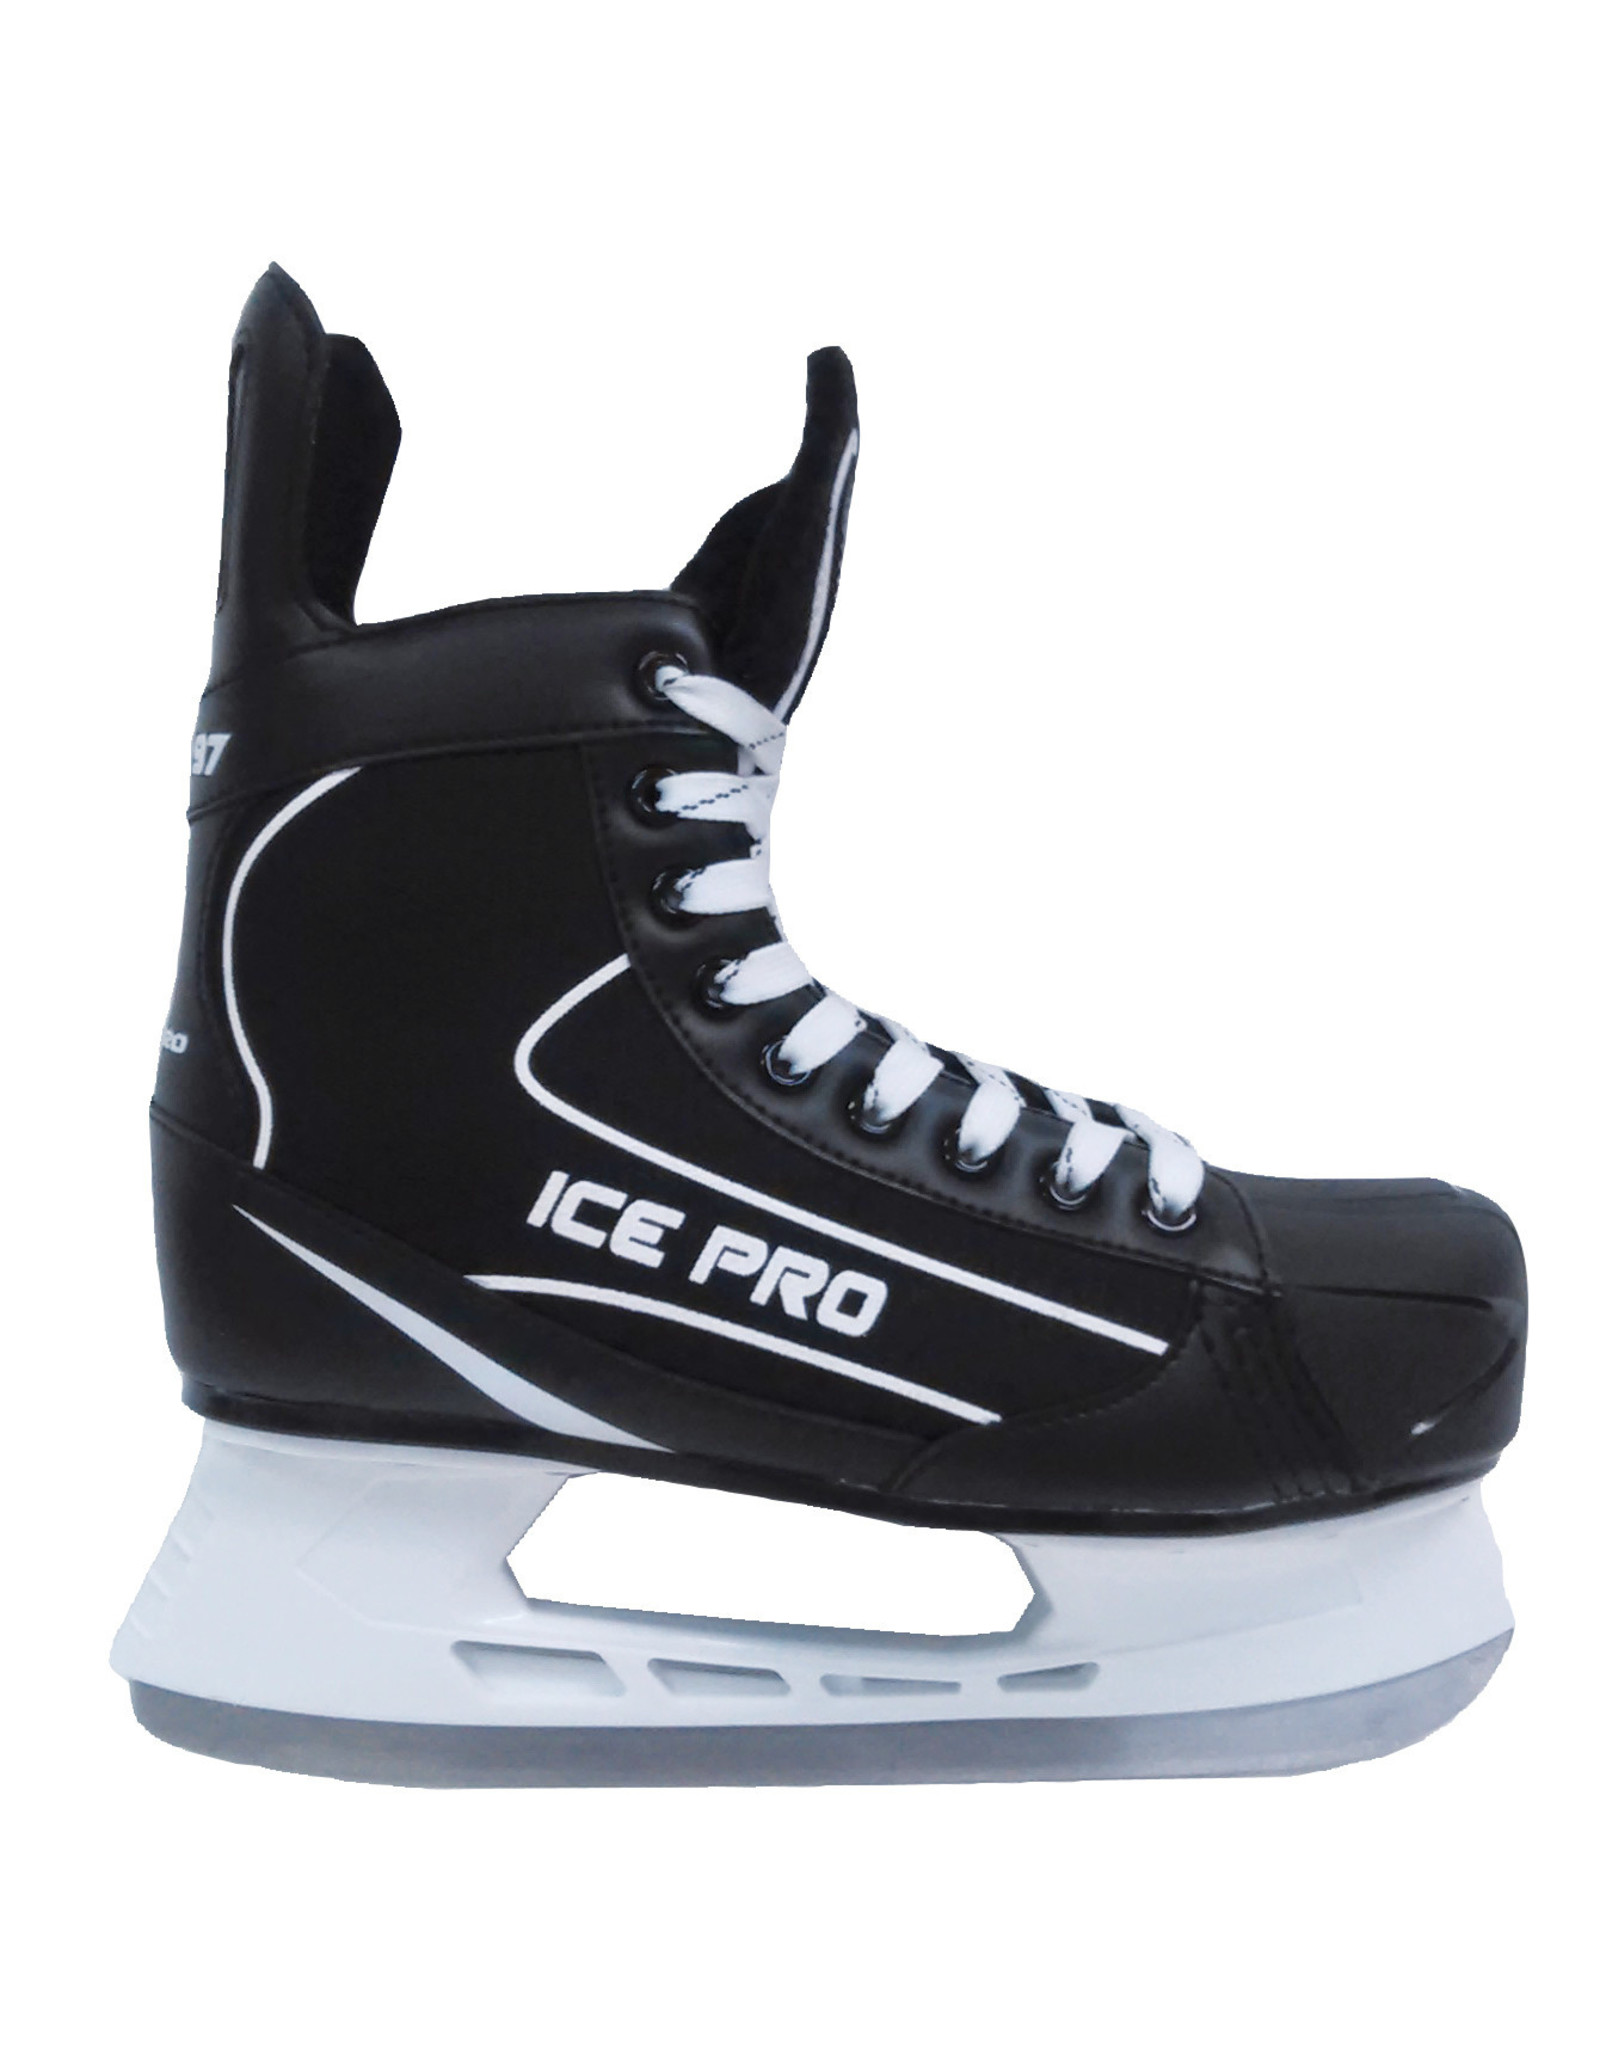 Hockey skate Ice Pro 97 YOUNG 9-13